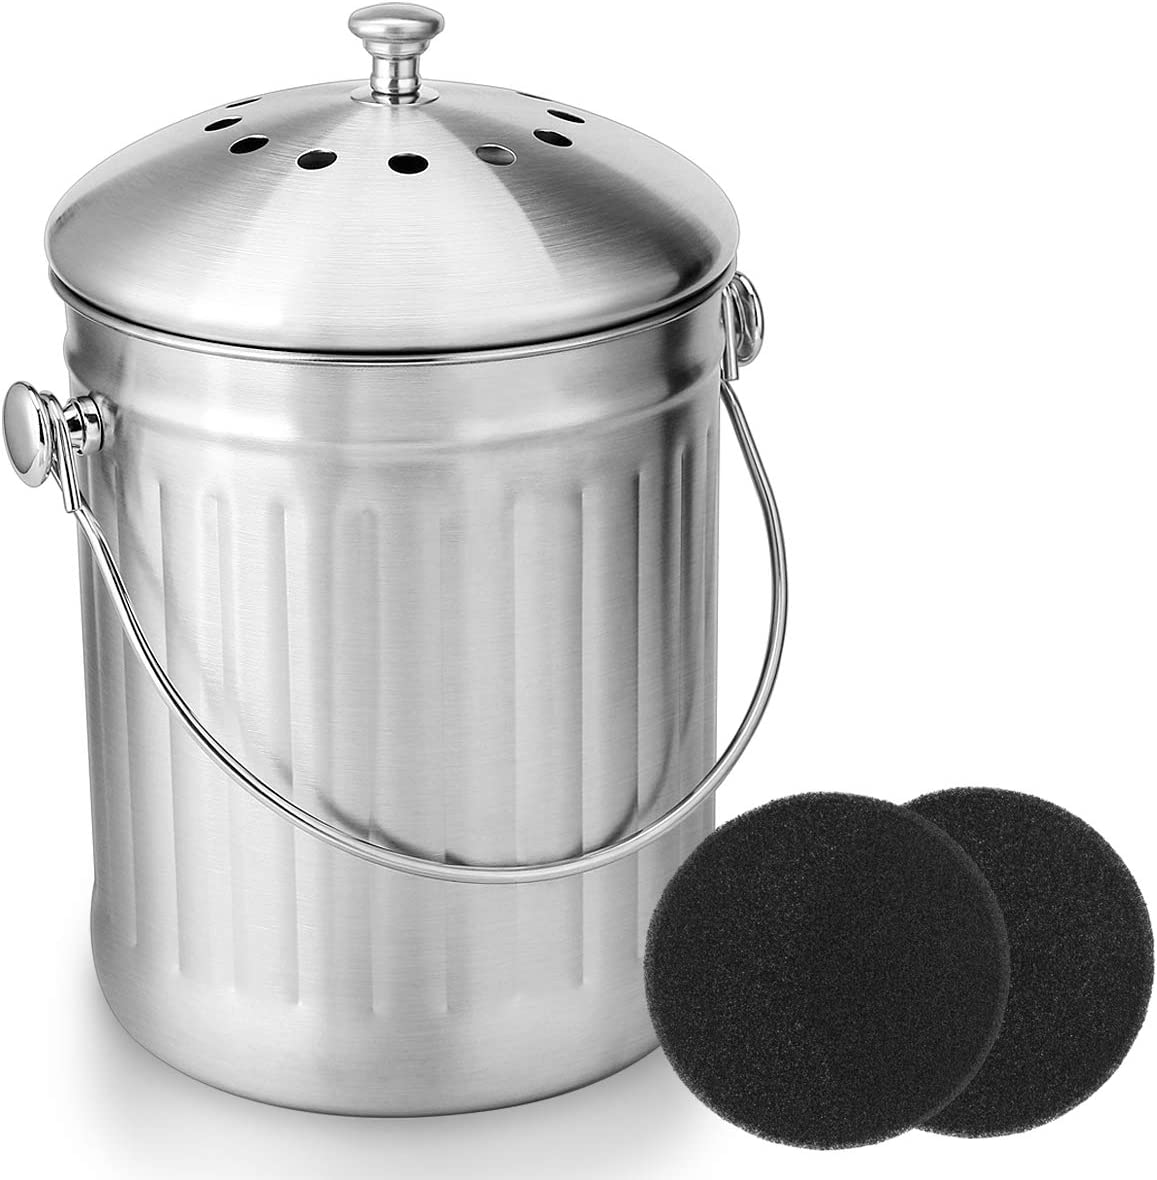 ENLOY Compost Bin, Stainless Steel Indoor Compost Bucket for Kitchen  Countertop Odorless Compost Pail for Kitchen Food Waste with Carrying  Handle and ...